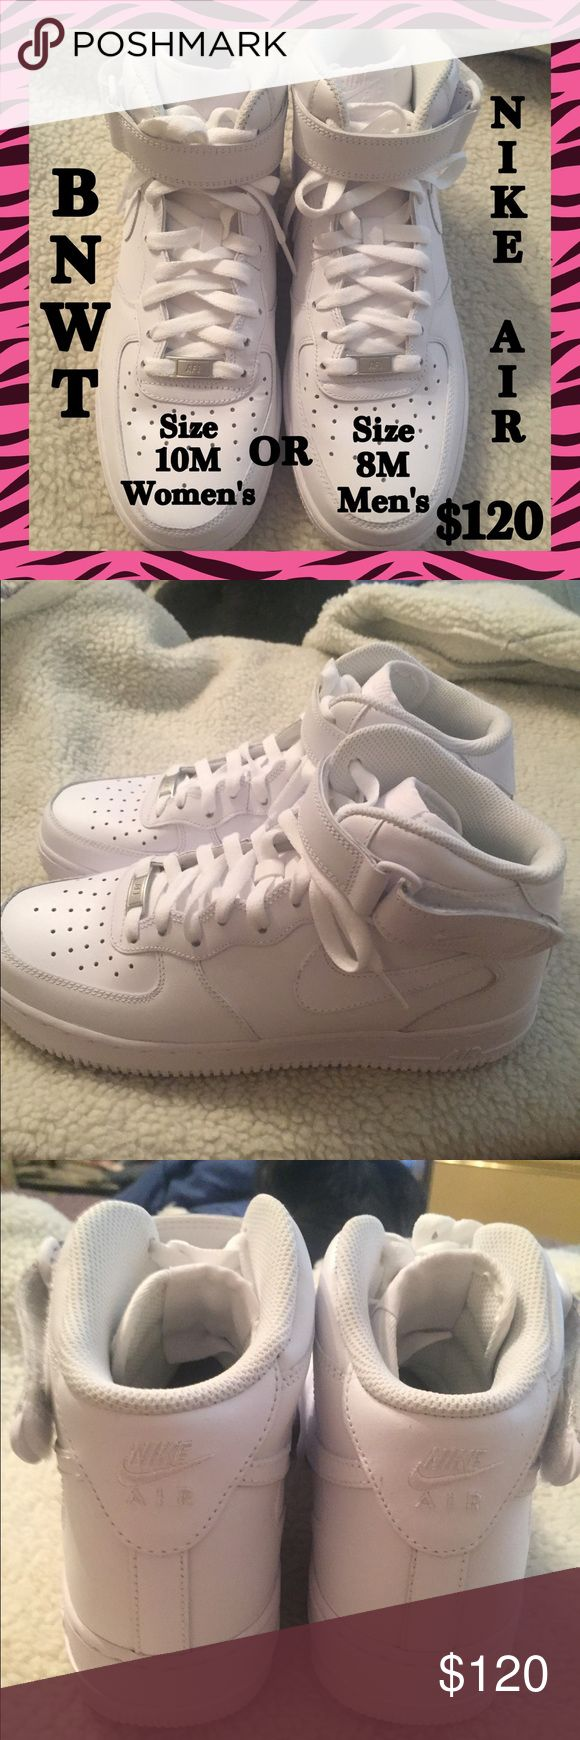 BNWT- Nike Air Force One White Mid Tops. BNWT-  Nike Air Force One White Mid Tops, With Velcro Closure. Size Women's 10M/ Men's Size 8M.  I Ordered On Line & They Are A Bit Too Big, I Only Tried On Once, NEVER WORN!!!  BRAND NEW!!!  In Perfect Condition!!!  10/10.  Comes With Original Box. Nike Shoes Athletic Shoes